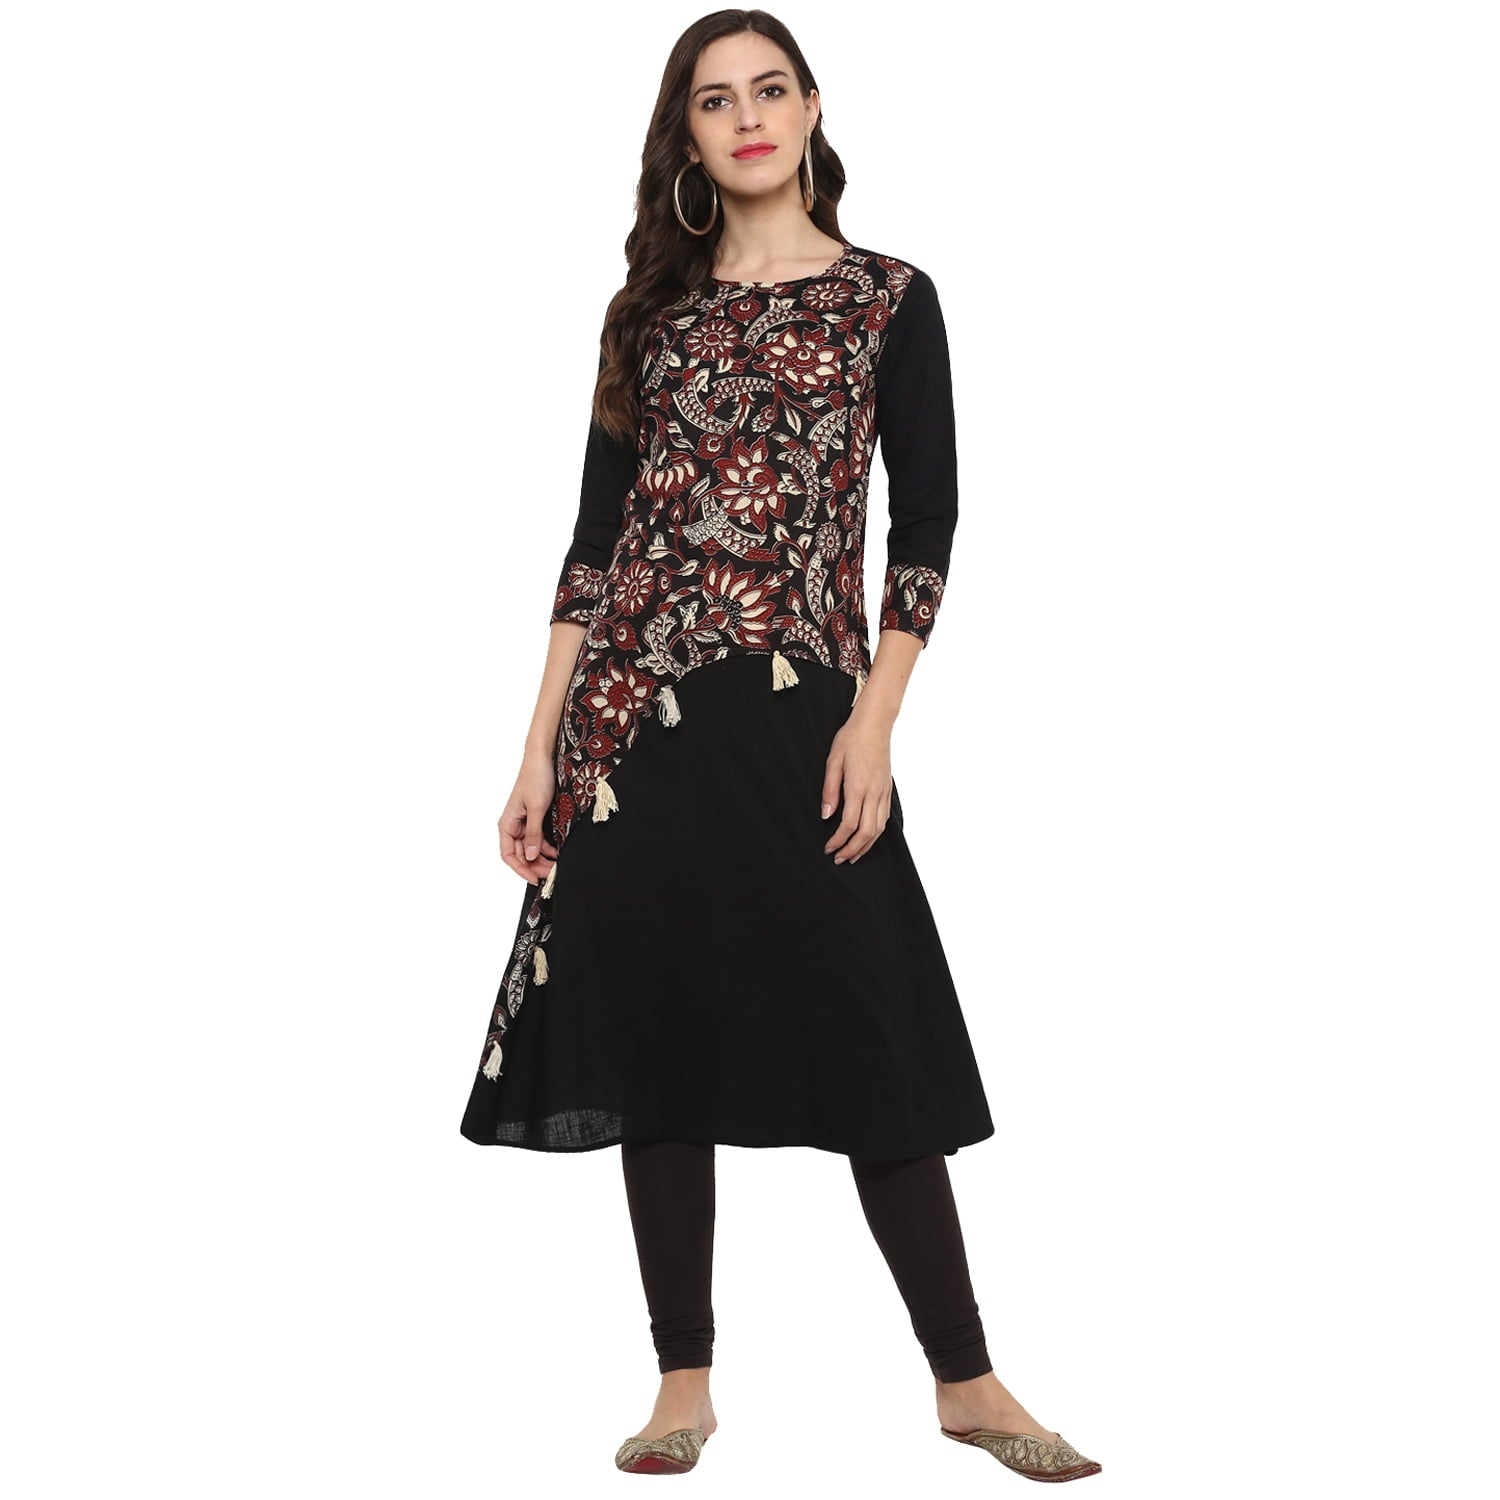 A-line Cotton Slub  Kalamkari Print Kurta (Brown/Black).